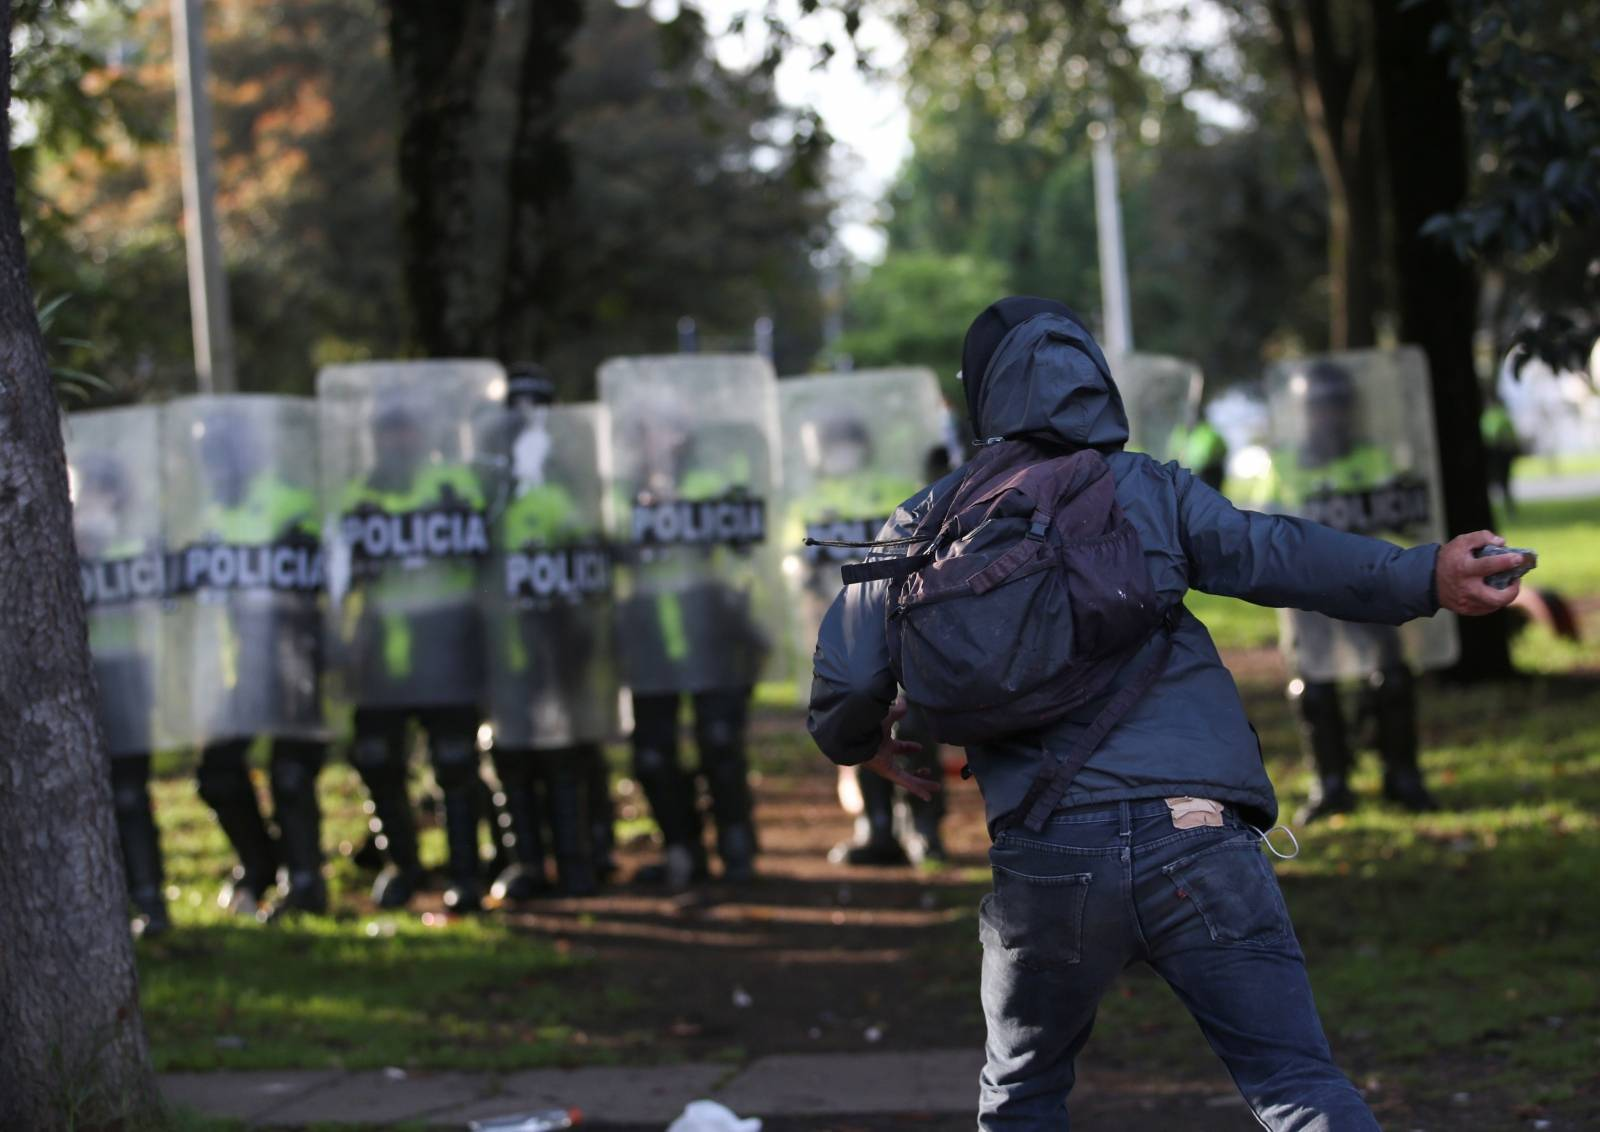 A demonstrator faces police during clashes after a man, who was detained for violating social distancing rules, died from being repeatedly shocked with a stun gun by officers, according to authorities, in Bogota